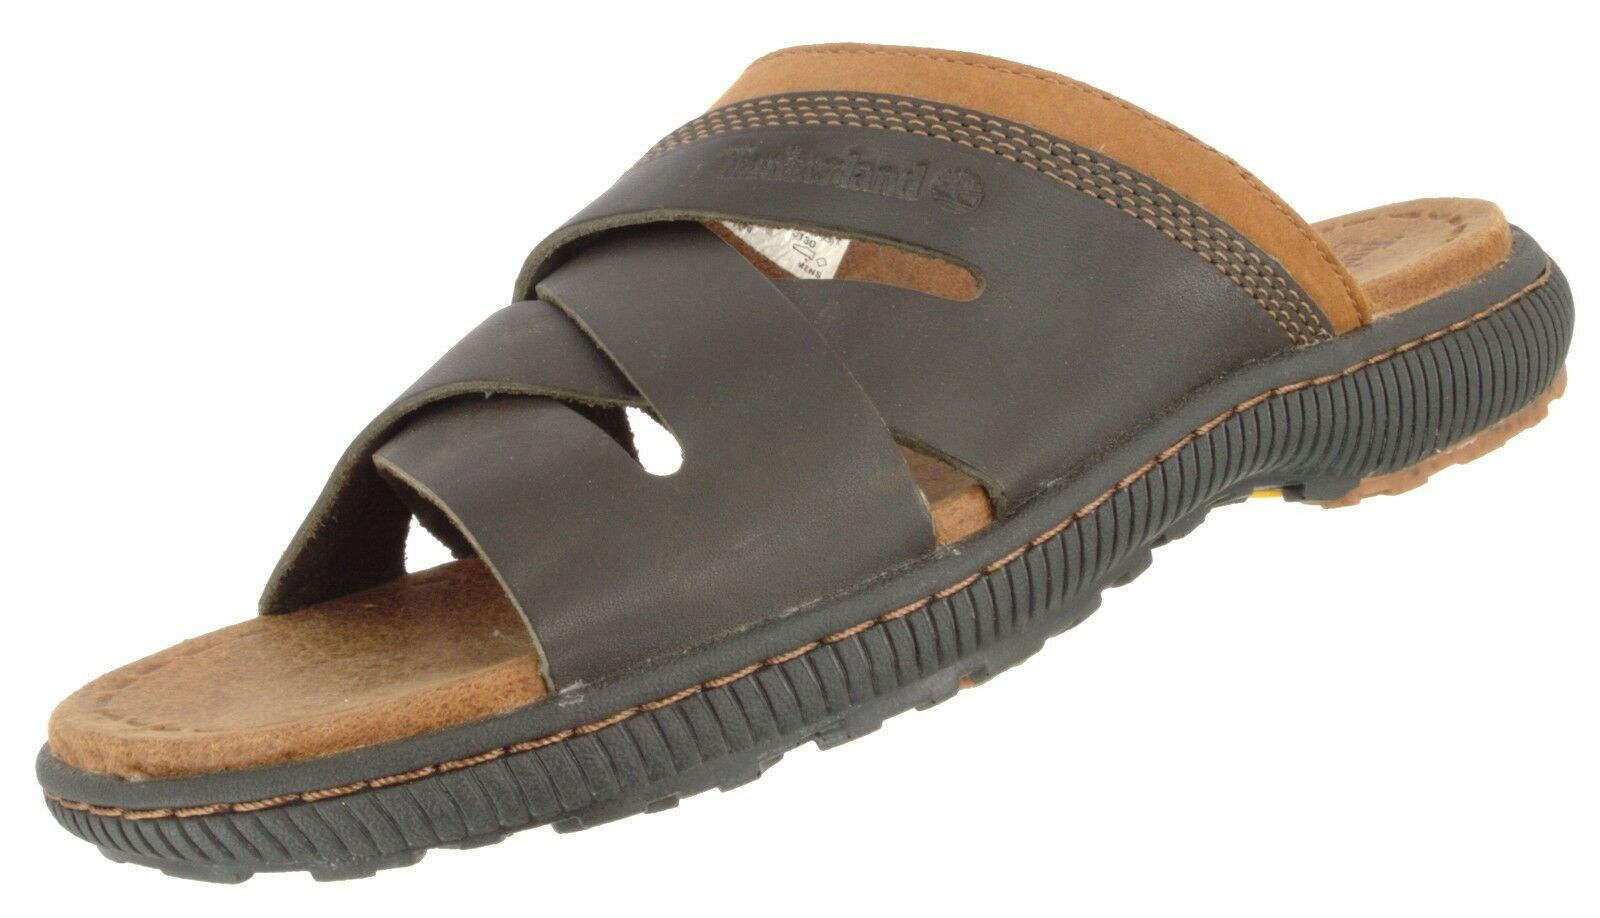 Primary image for TIMBERLAND 7703A MEN'S EARTHKEEPERS HOLLBROOK  LEATHER SLIDE SANDALS US 7 EU 40